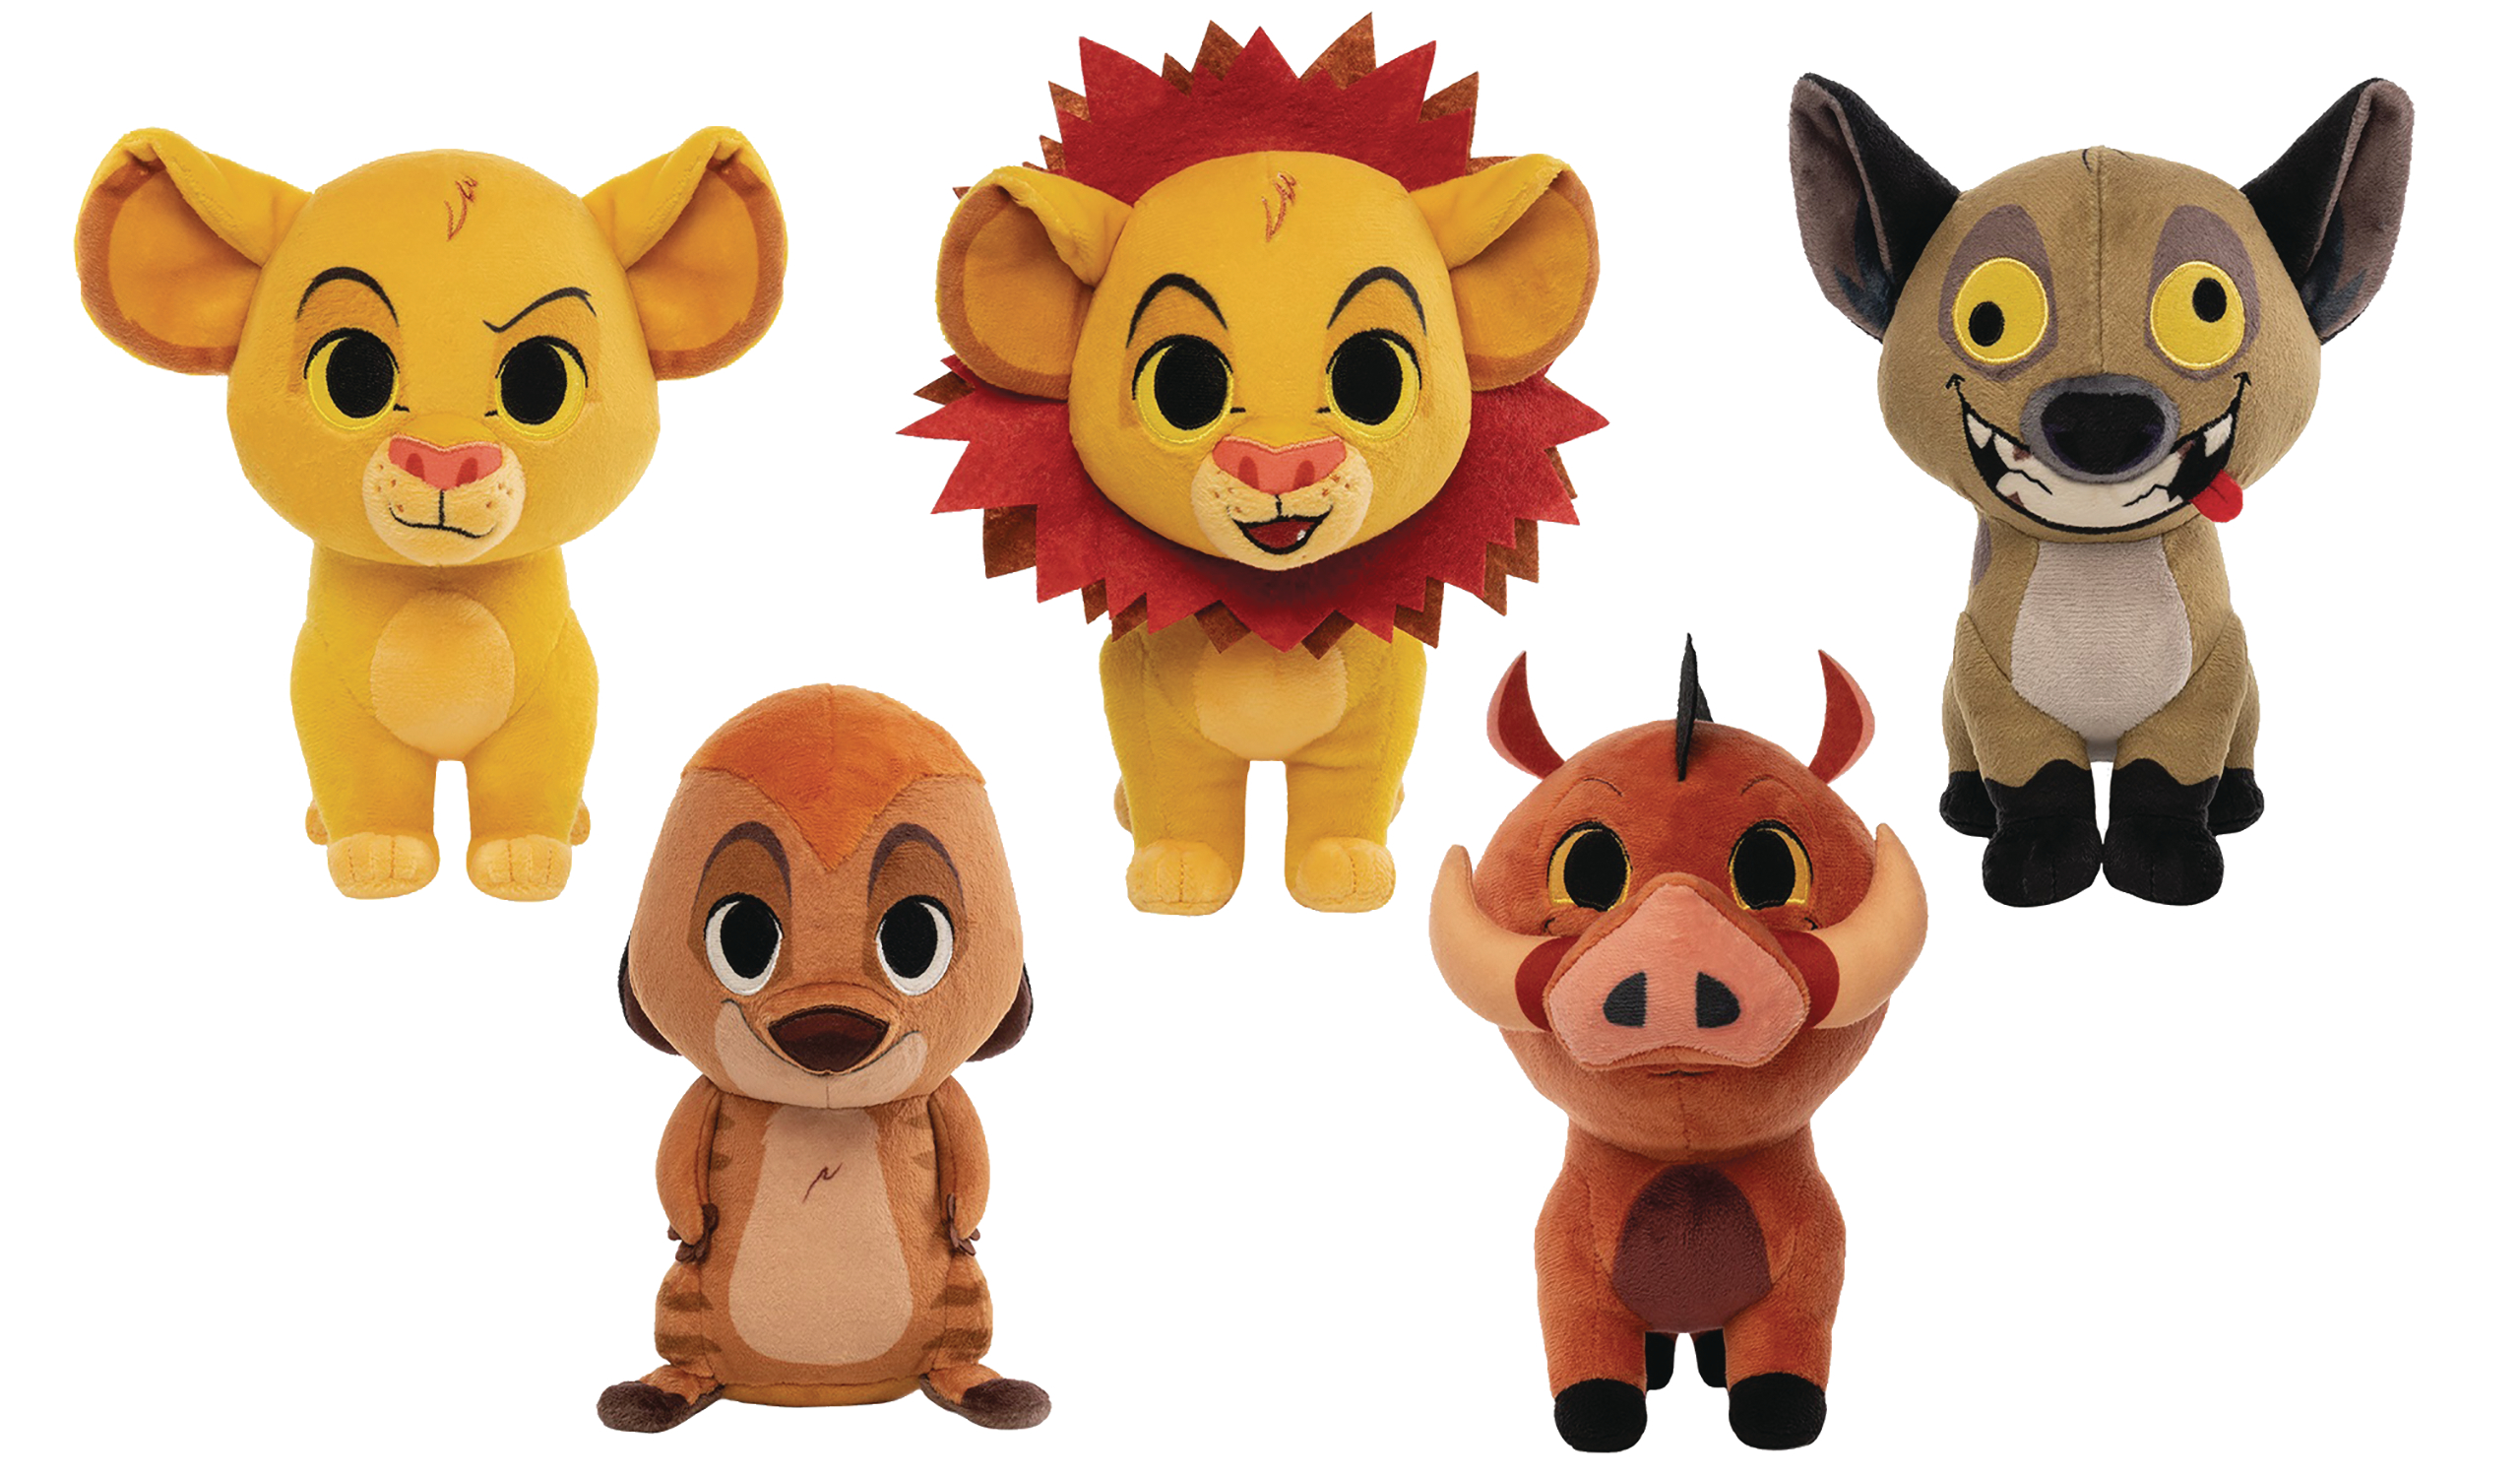 FUNKO PLUSH LION KING 6PC PLUSH DISP (Net)